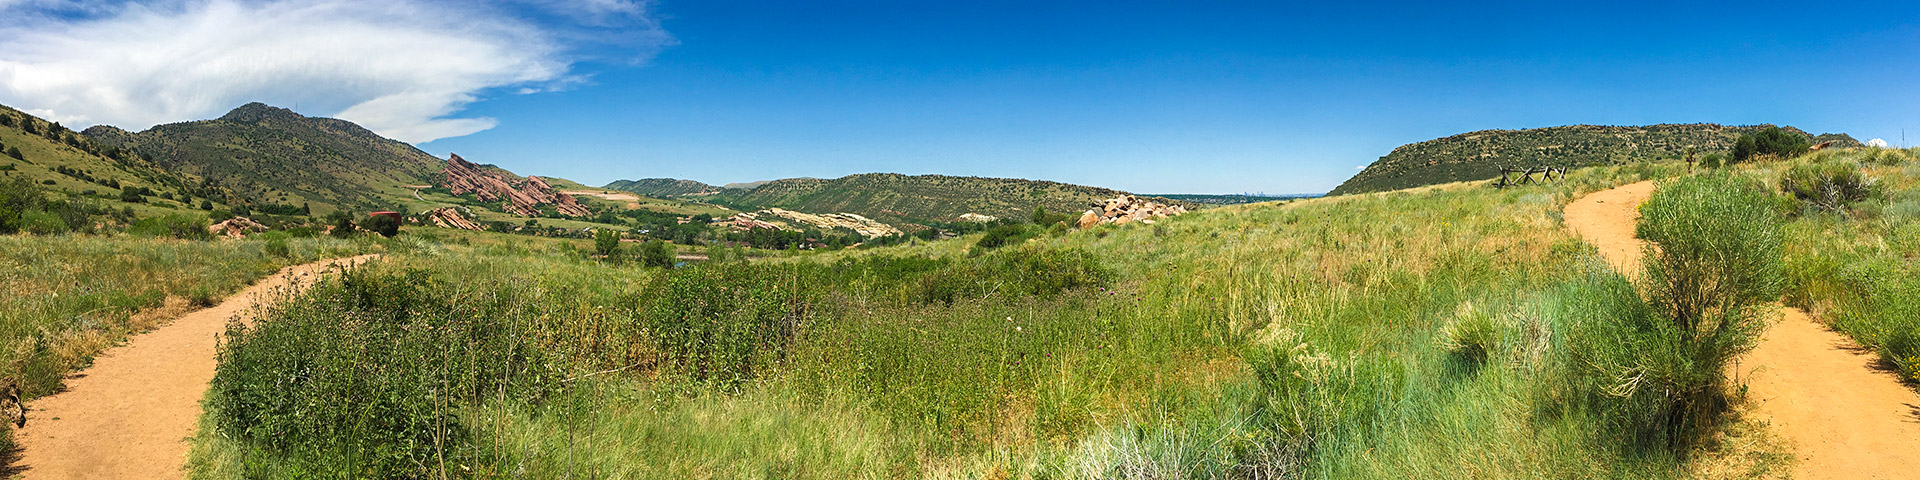 Panorama of the Mount Falcon Park hike in Denver, Colorado